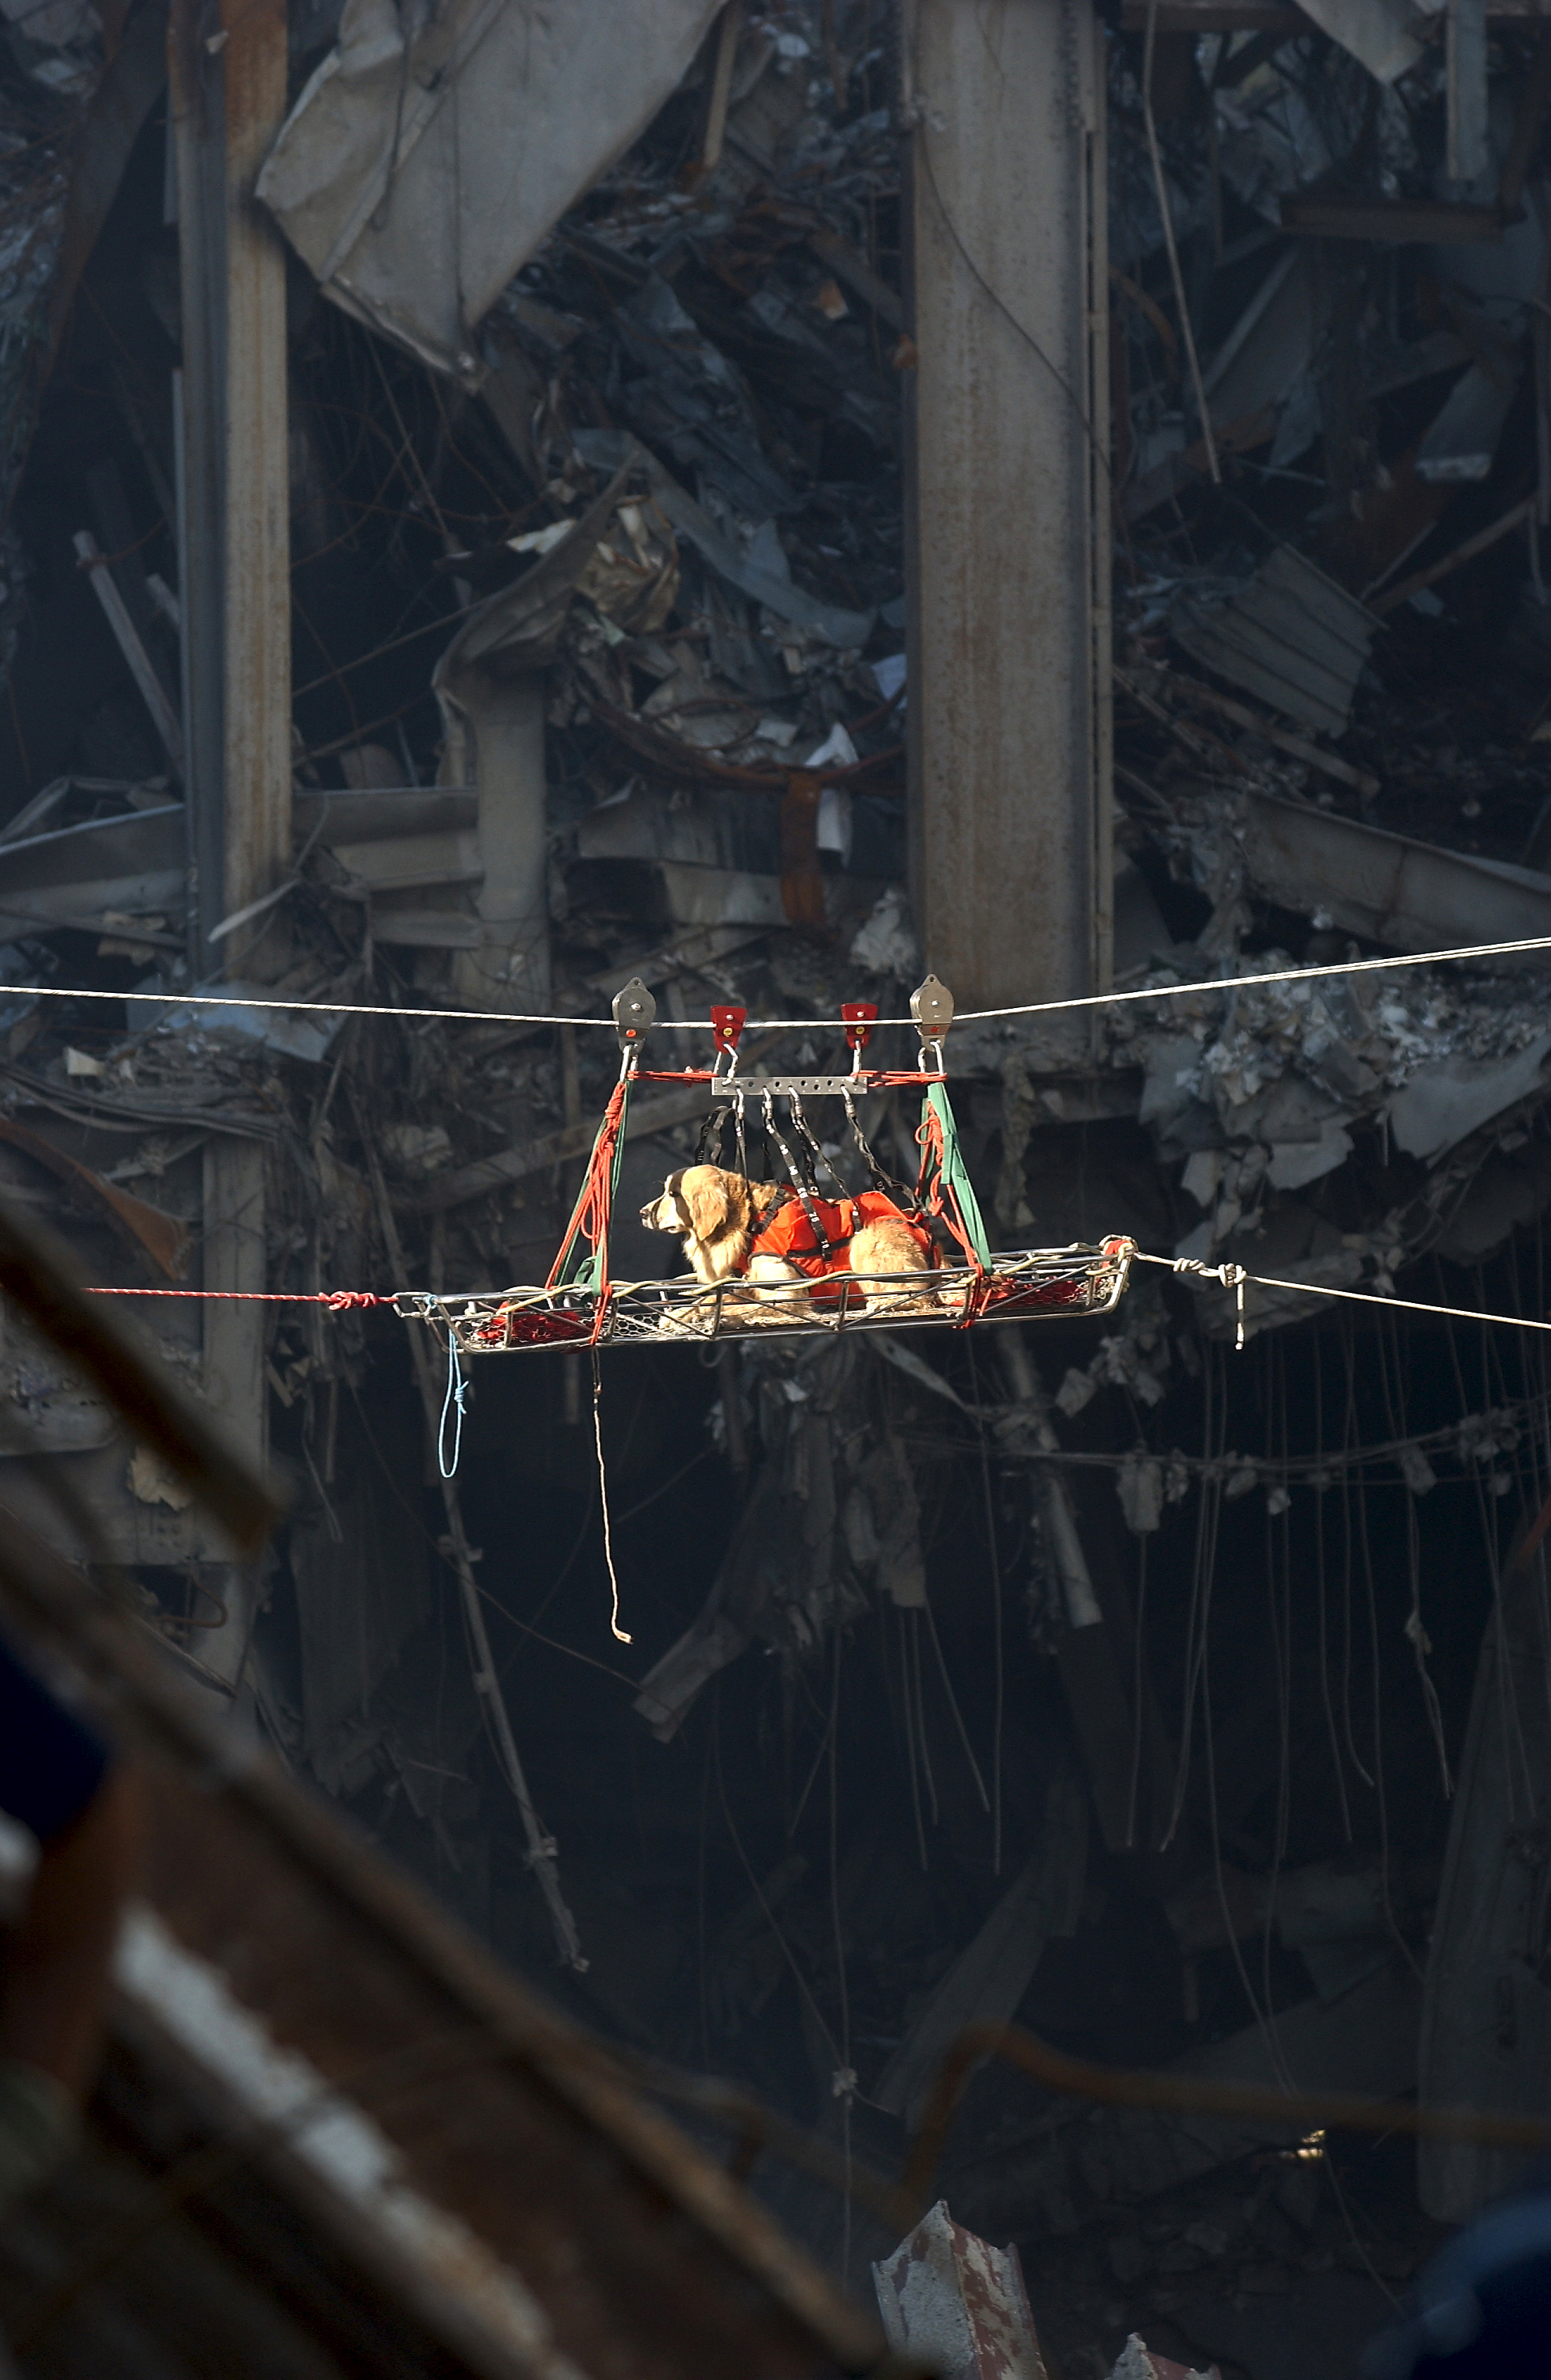 010915-N-3995K-022 New York, N.Y.  -- A rescue dog is transported out of the debris of the World Trade Center.  The twin towers of the center were destroyed in a Sept. 11 terrorist attack.  U.S. Navy Photo by Journalist 1st Class Preston Keres.  (RELEASED) Flickr - Beverly.